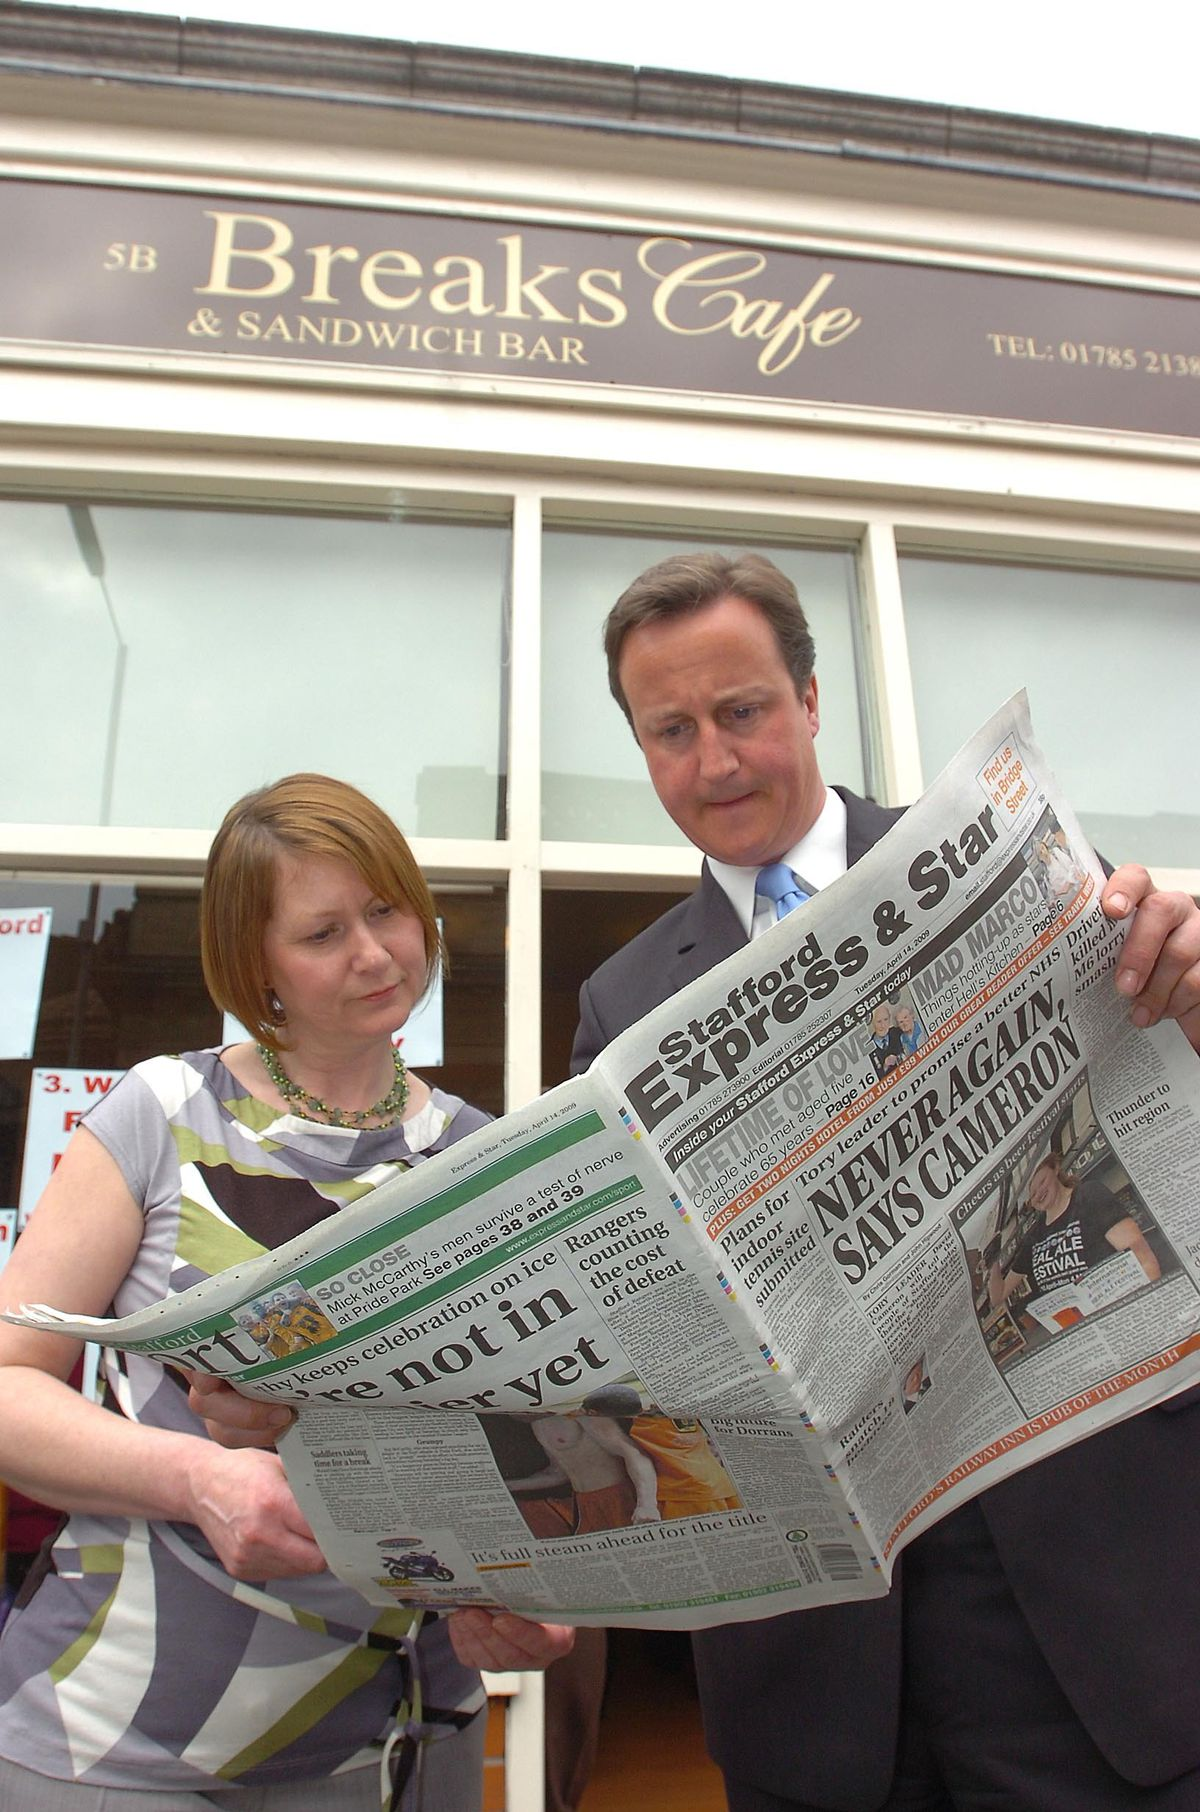 David Cameron and Julie Bailey with a copy of the Express & Star in 2009